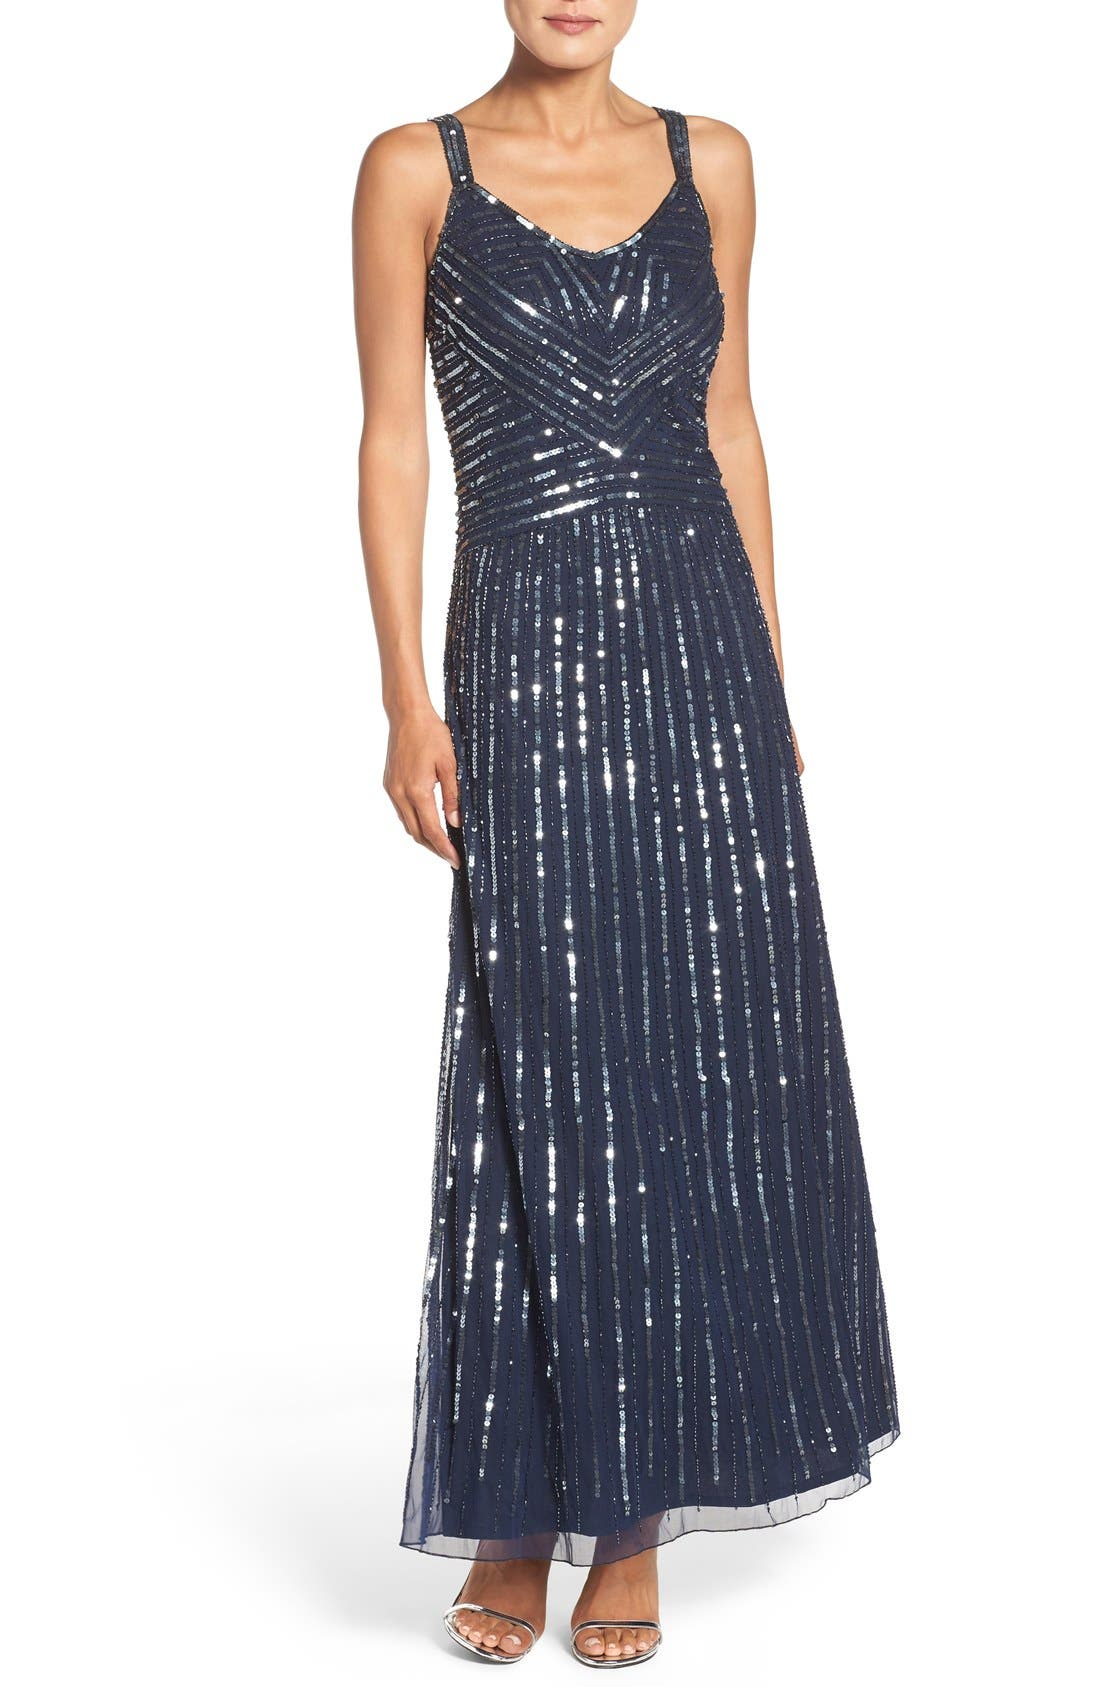 Main Image - Pisarro Nights Embellished Mesh Fit & Flare Dress